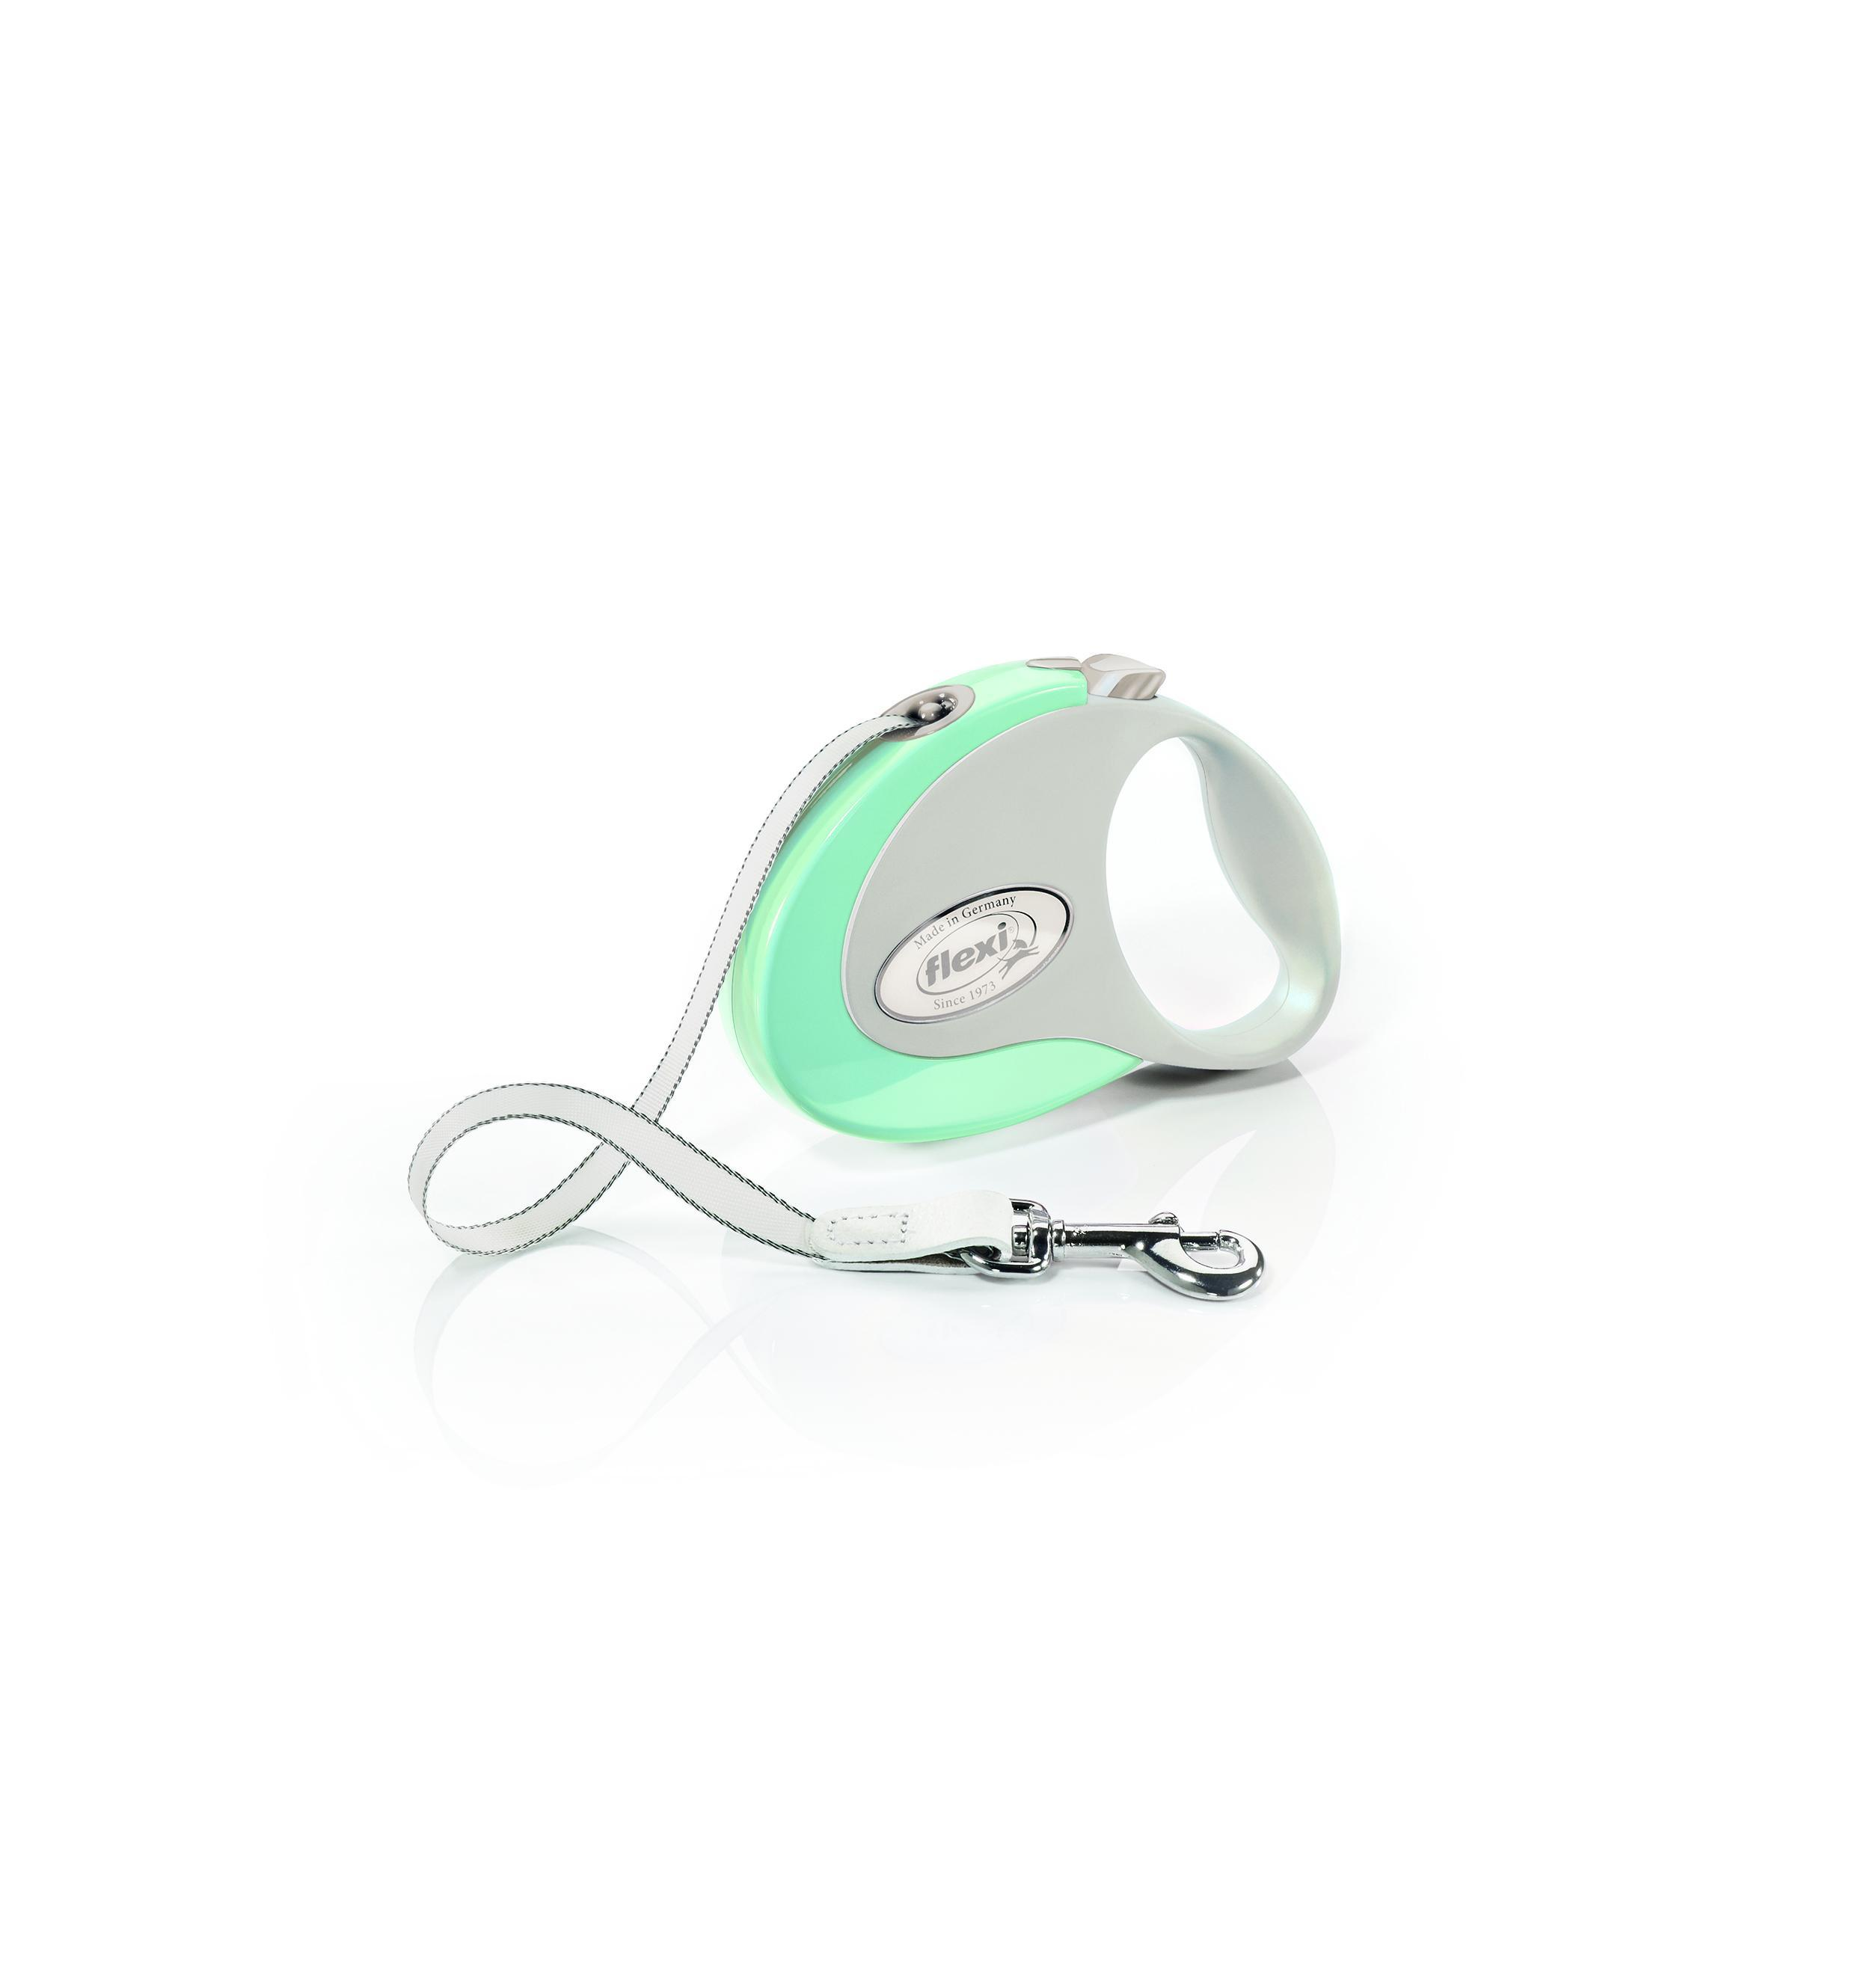 Flexi New Style Tape Dog Leash, Mint/Gray, Small, 10-ft